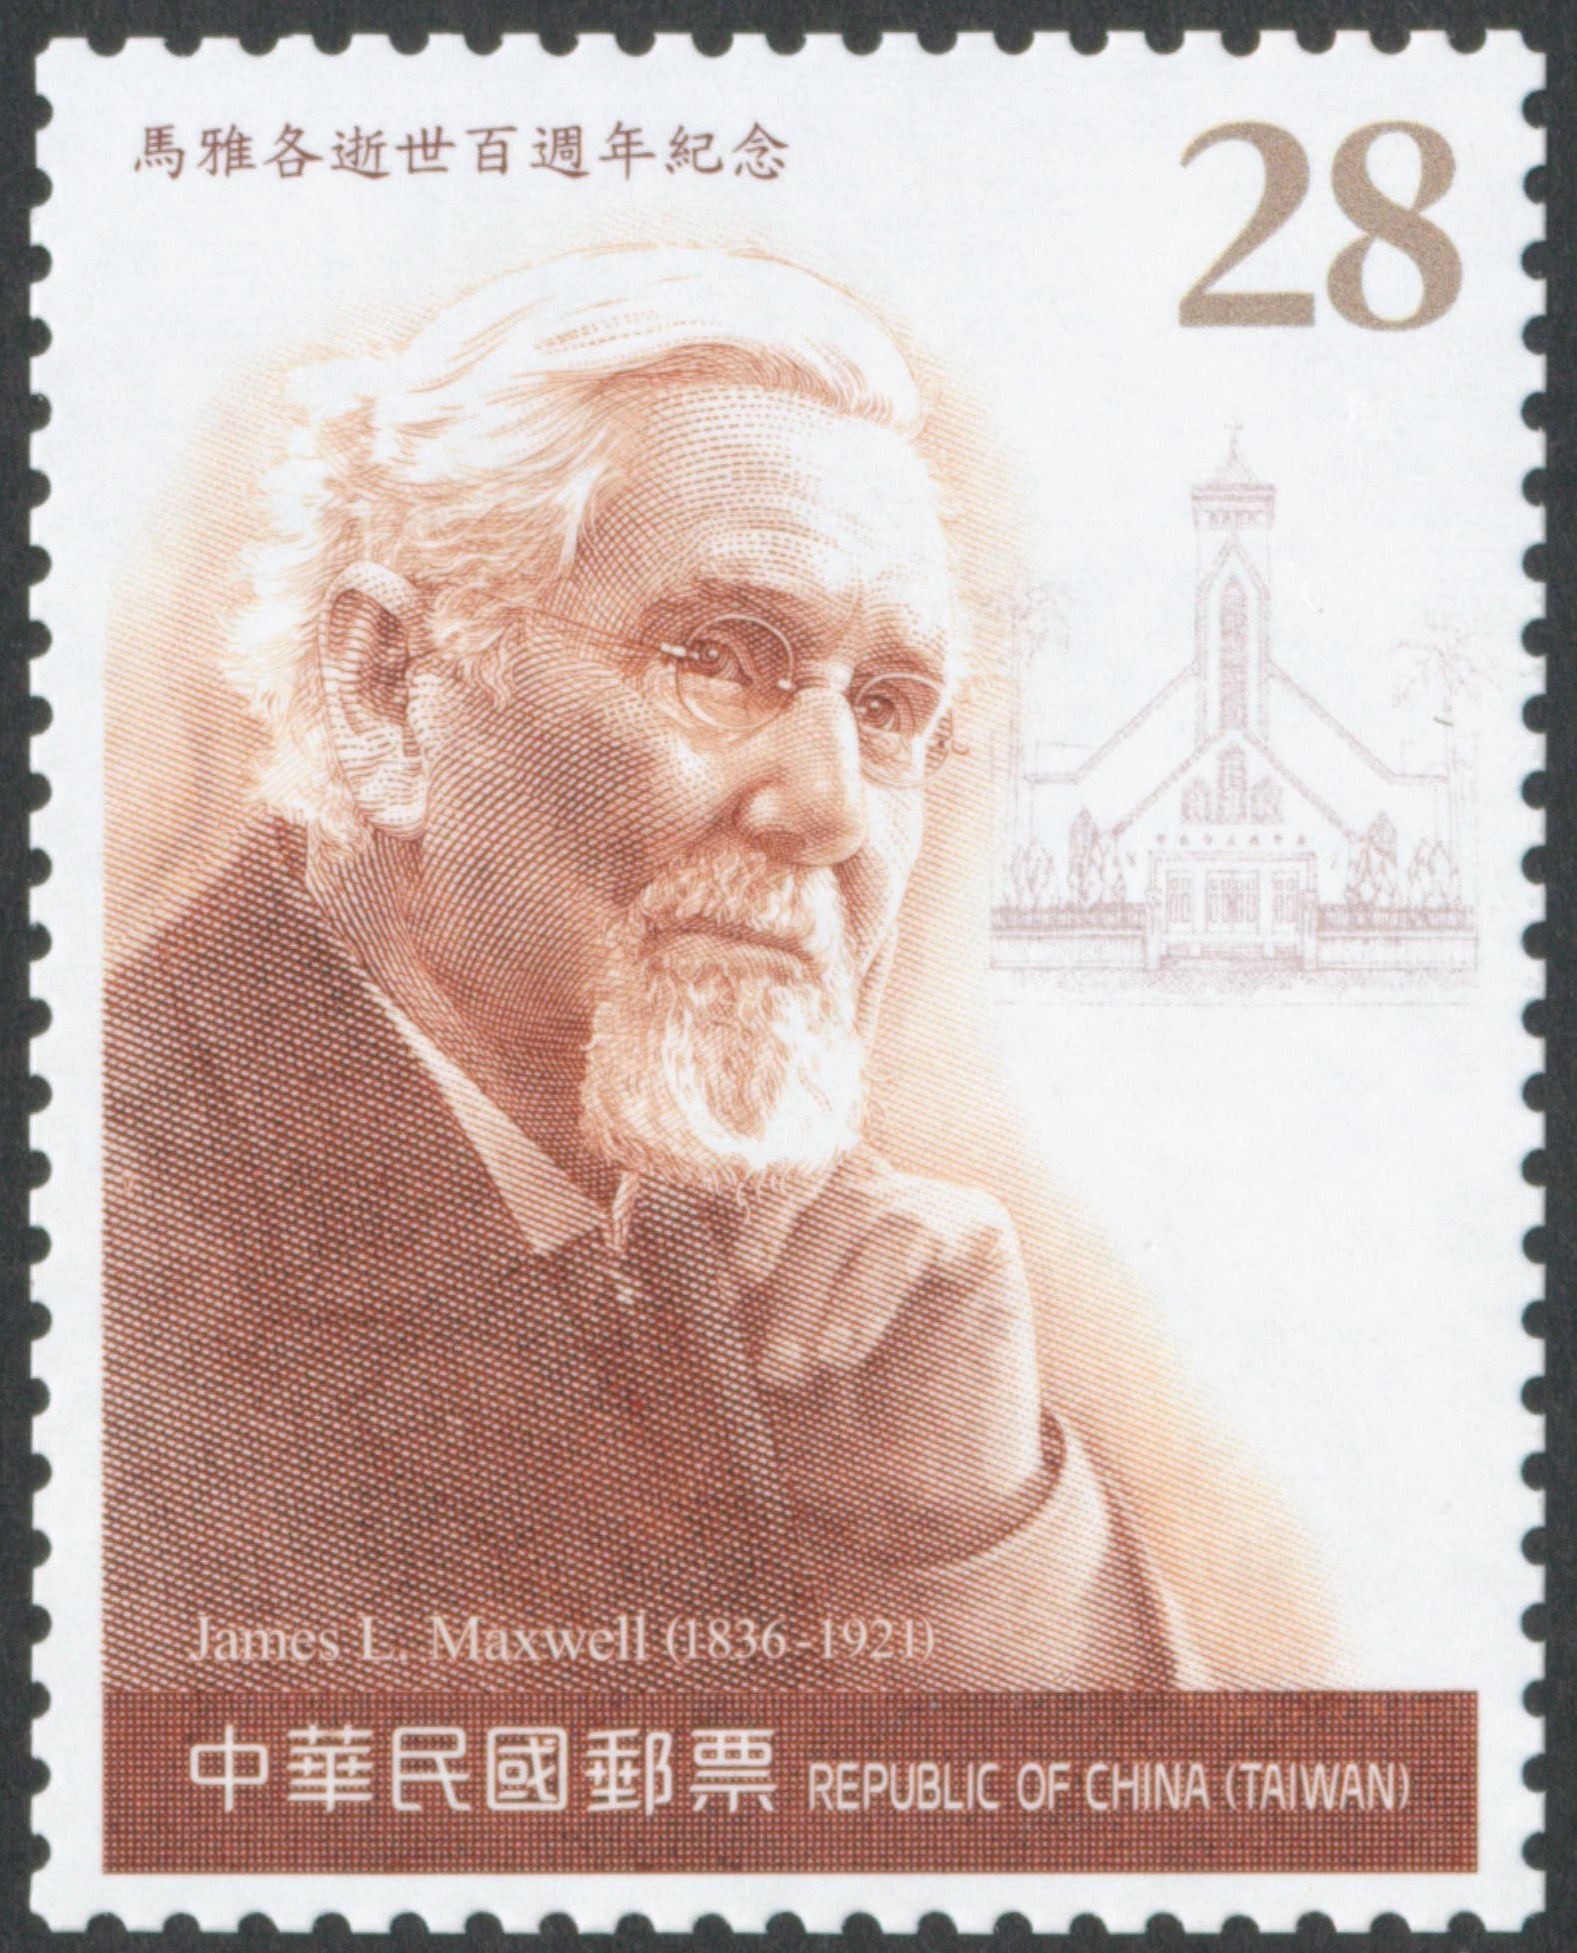 Centennial Anniversary of James L. Maxwell's Death Commemorative Issue